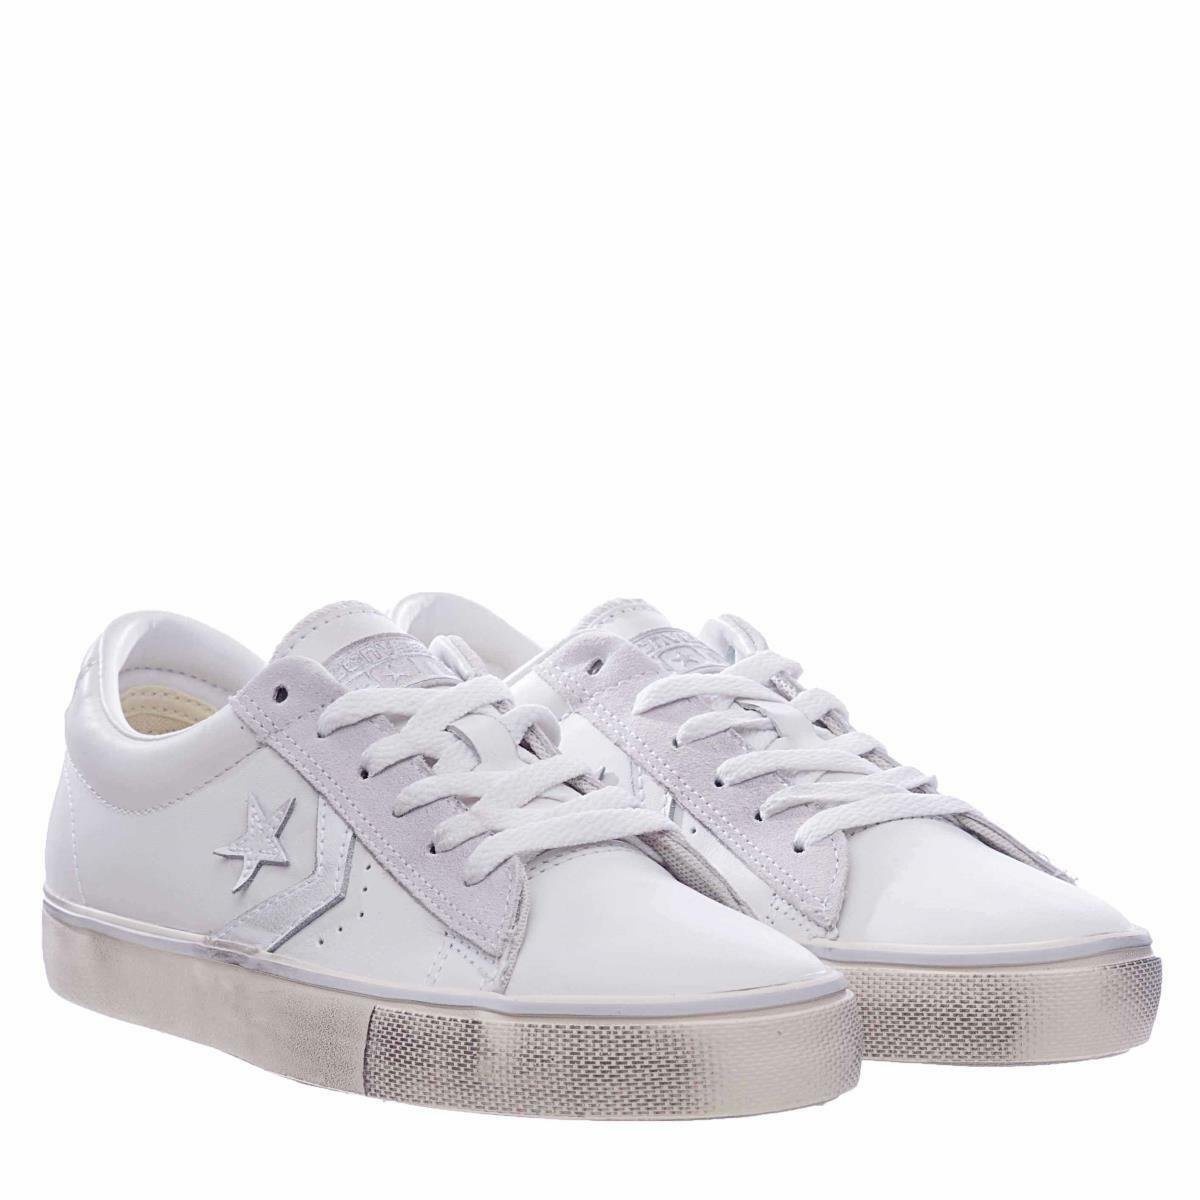 CONVERSE Pro Leather Vulc Distressed Leather  - sneakers in pelle bianco